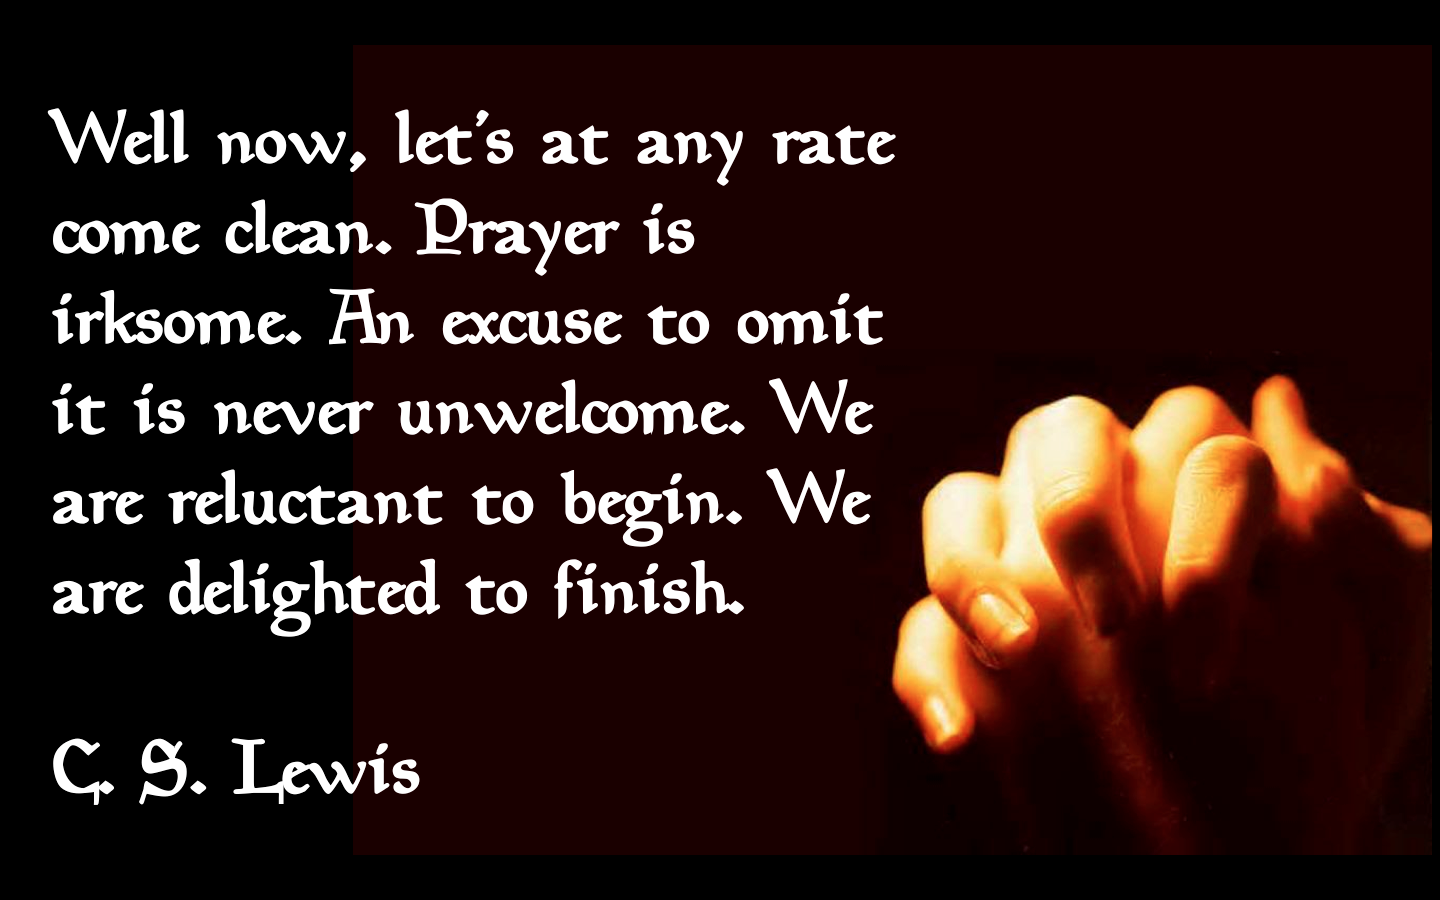 Prayer Quote C.slewis Prayer Is Irksome  The Wit & Wisdom Of C.slewis